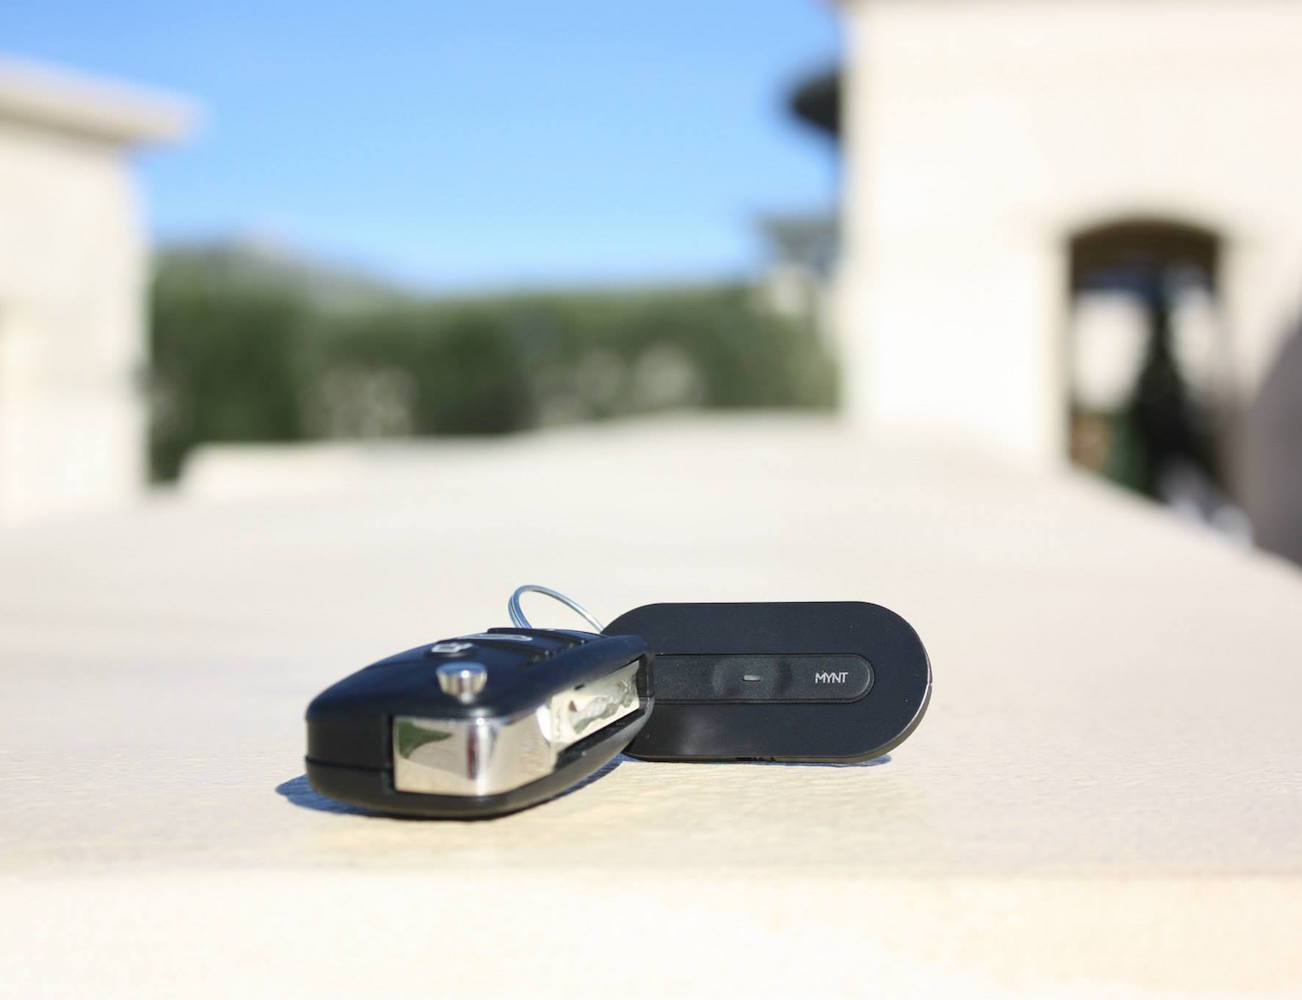 MYNT: Smart Button & Tracker, multi-functional and world's thinnest